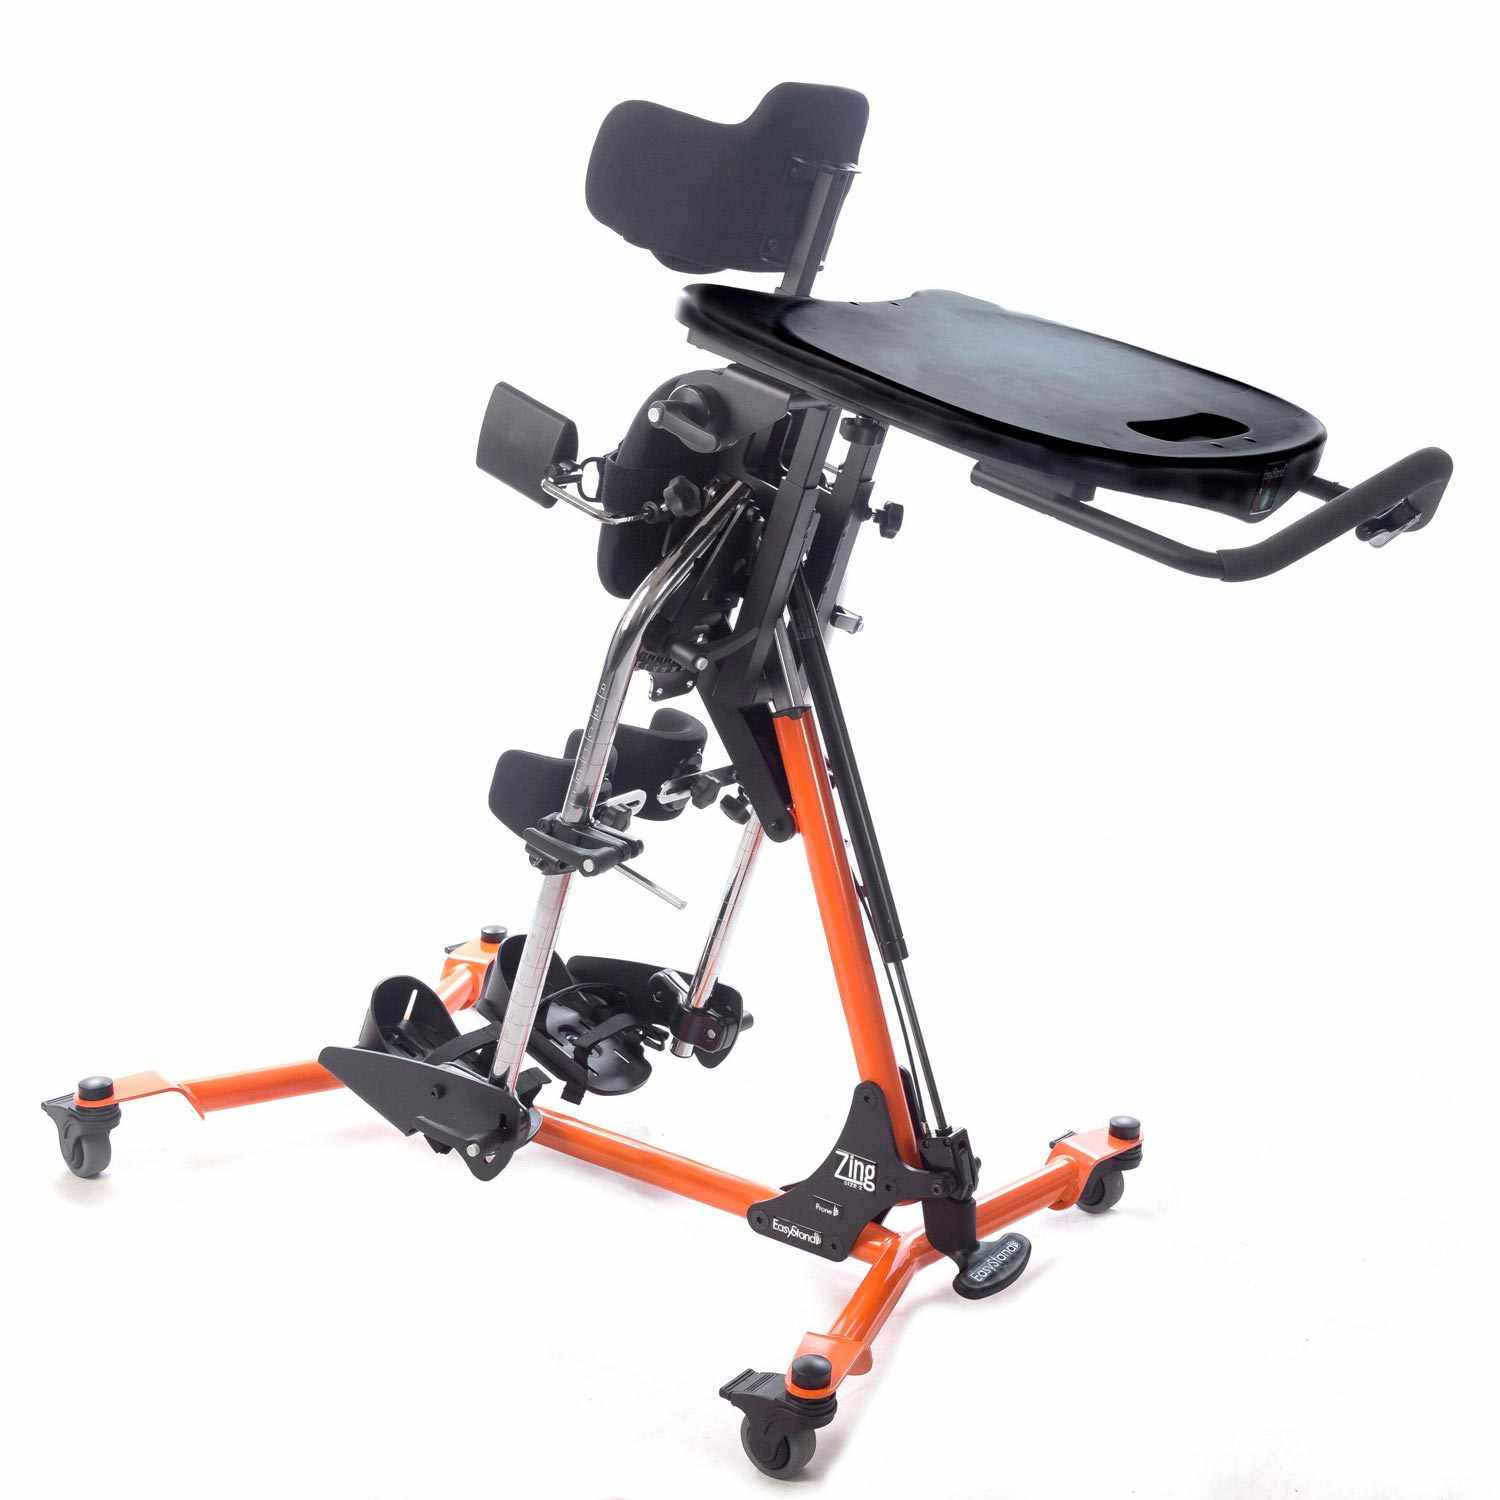 Easystand Zing size 2 prone stander - Package